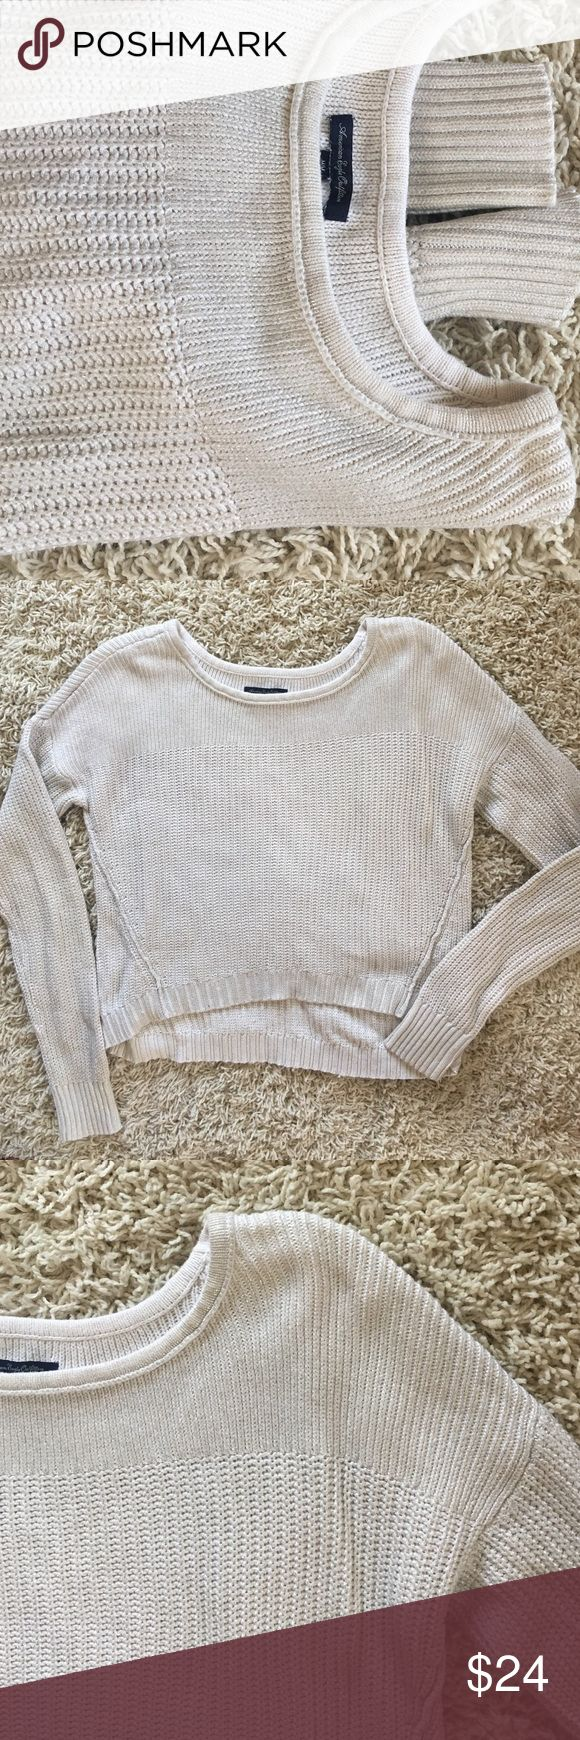 American Eagle Shimmer Crop Sweater Size M. Worn twice. Was a 36B at the time. Silver shimmer flecks in the fabric. Super cute for holiday parties coming up with a high waisted leather skirt and boots! ☺️ American Eagle Outfitters Jackets & Coats